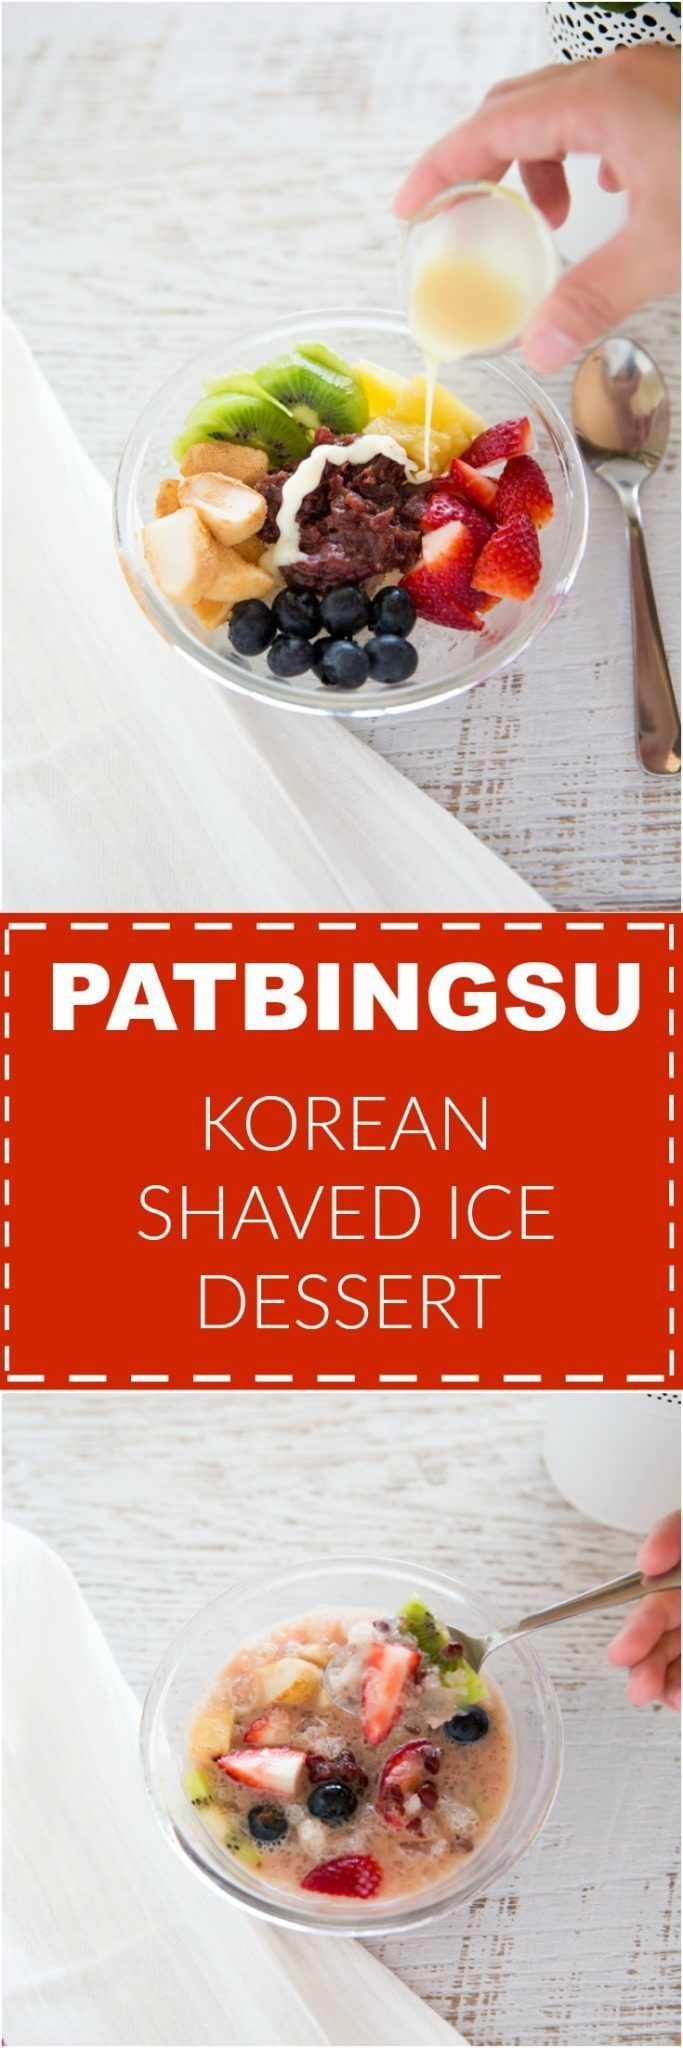 Get ready for summer with this perfect Korean summer dessert - Patbingsu! It's Korean shaved ice dessert topped with fruit, red bean paste and sweet condensed milk!   MyKoreanKitchen.com via @mykoreankitchen